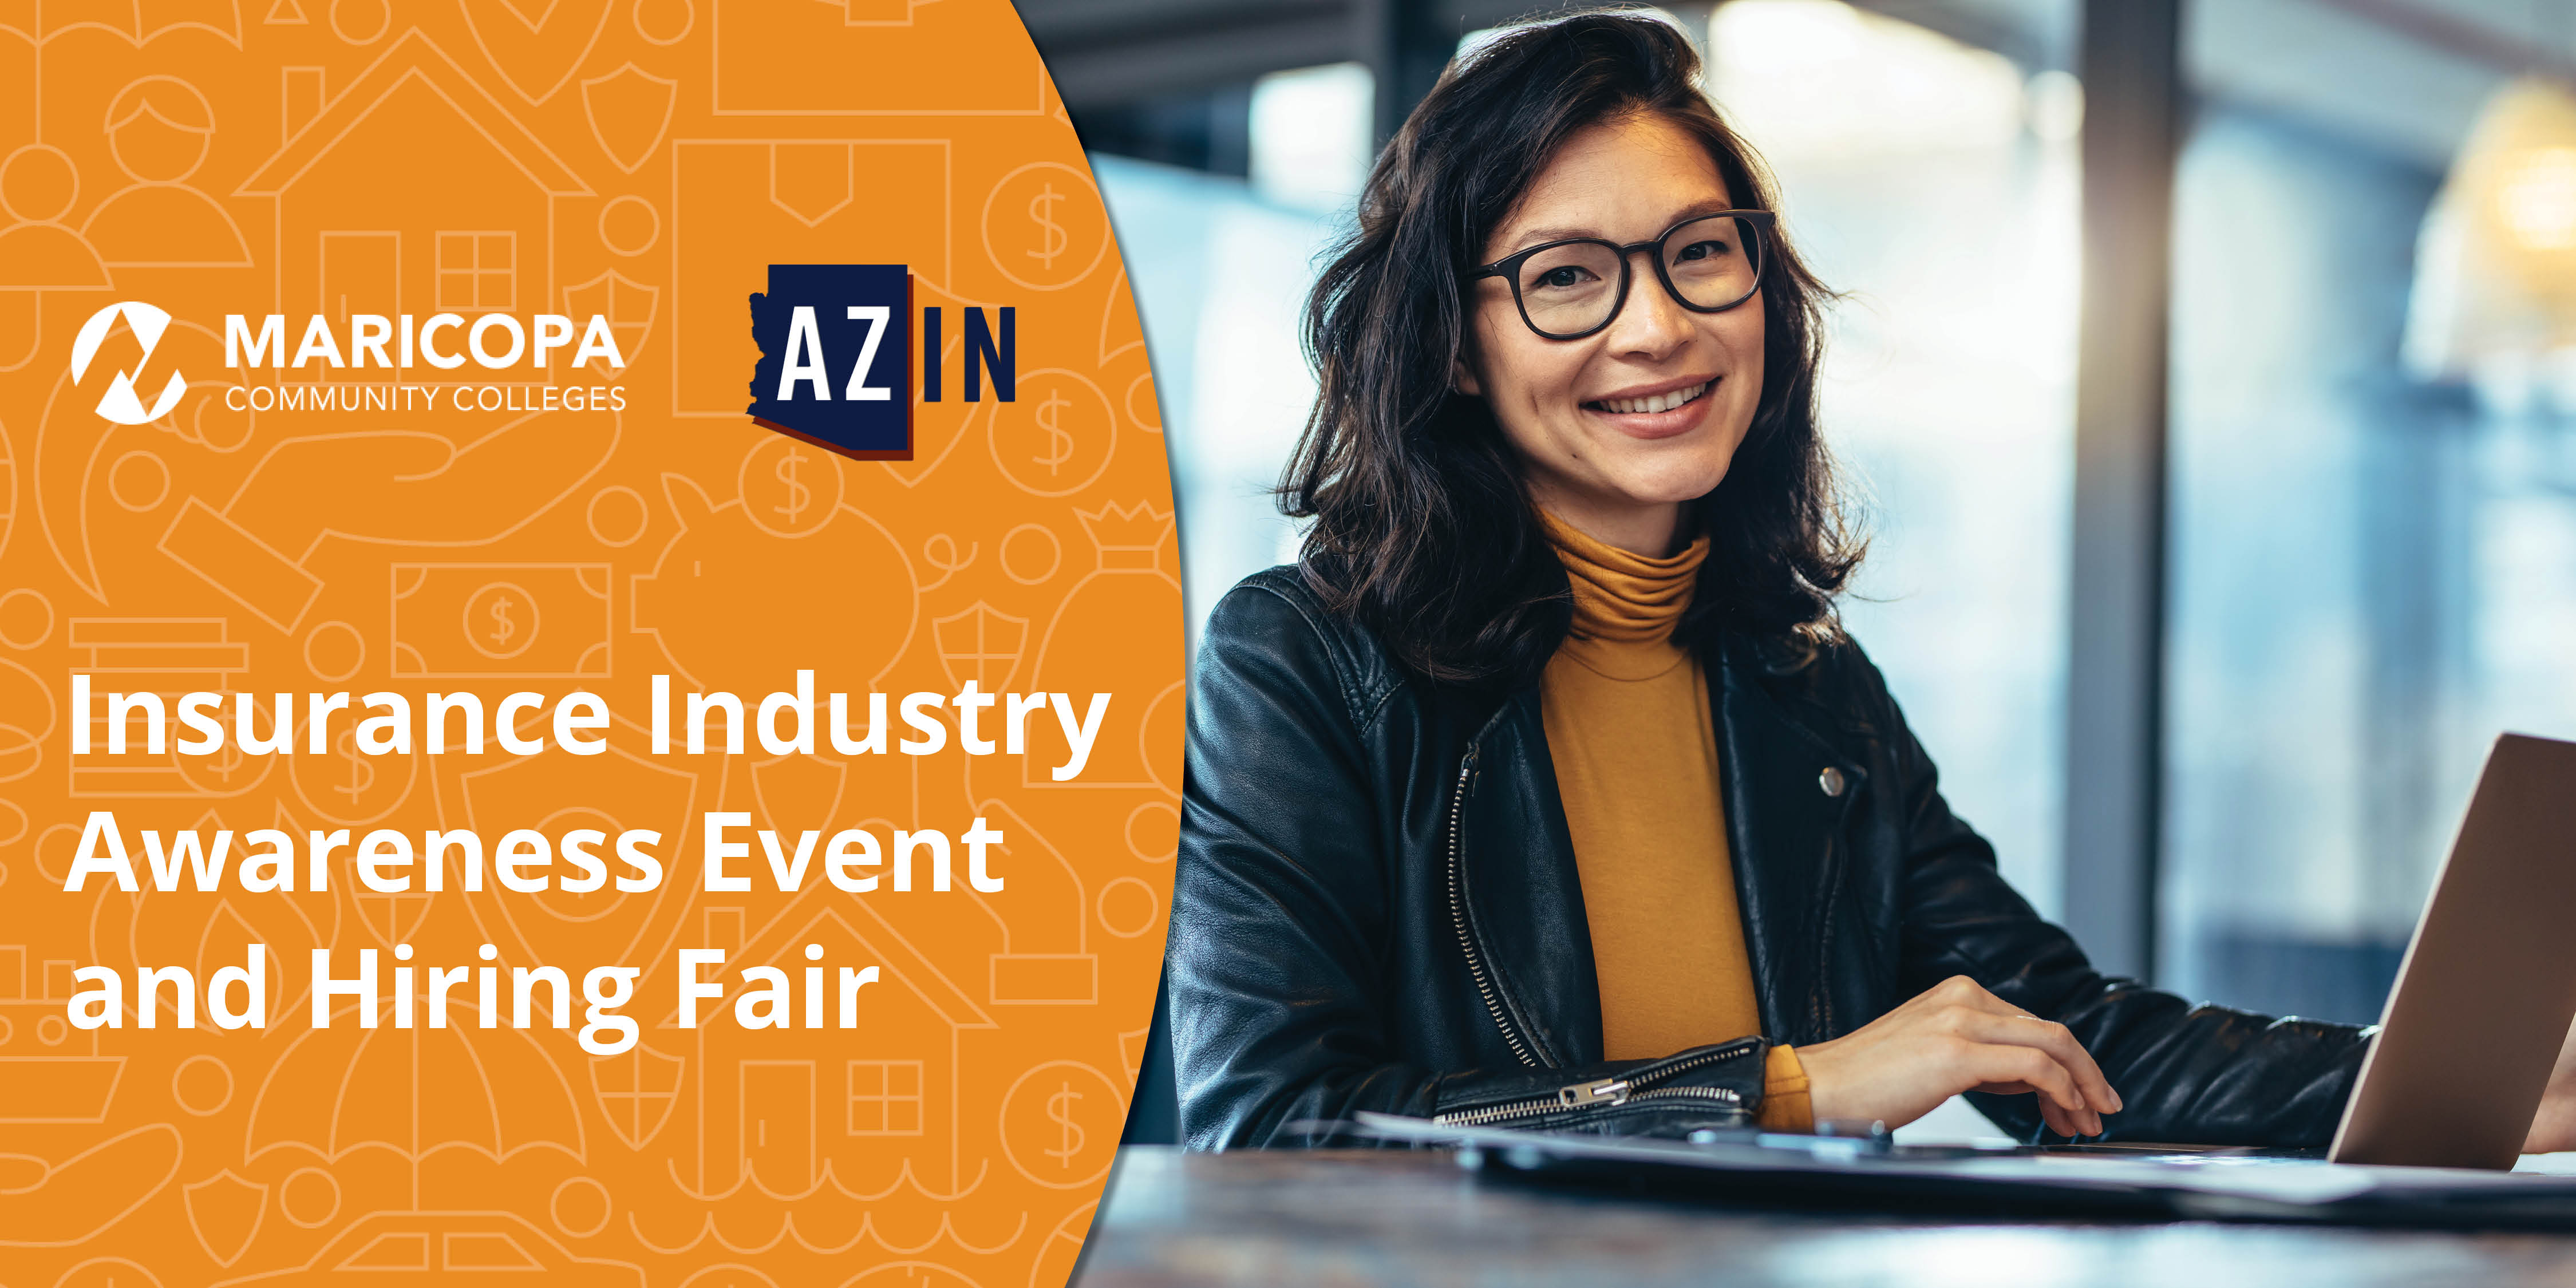 Insurance Industry Awareness Event and Hiring Fair